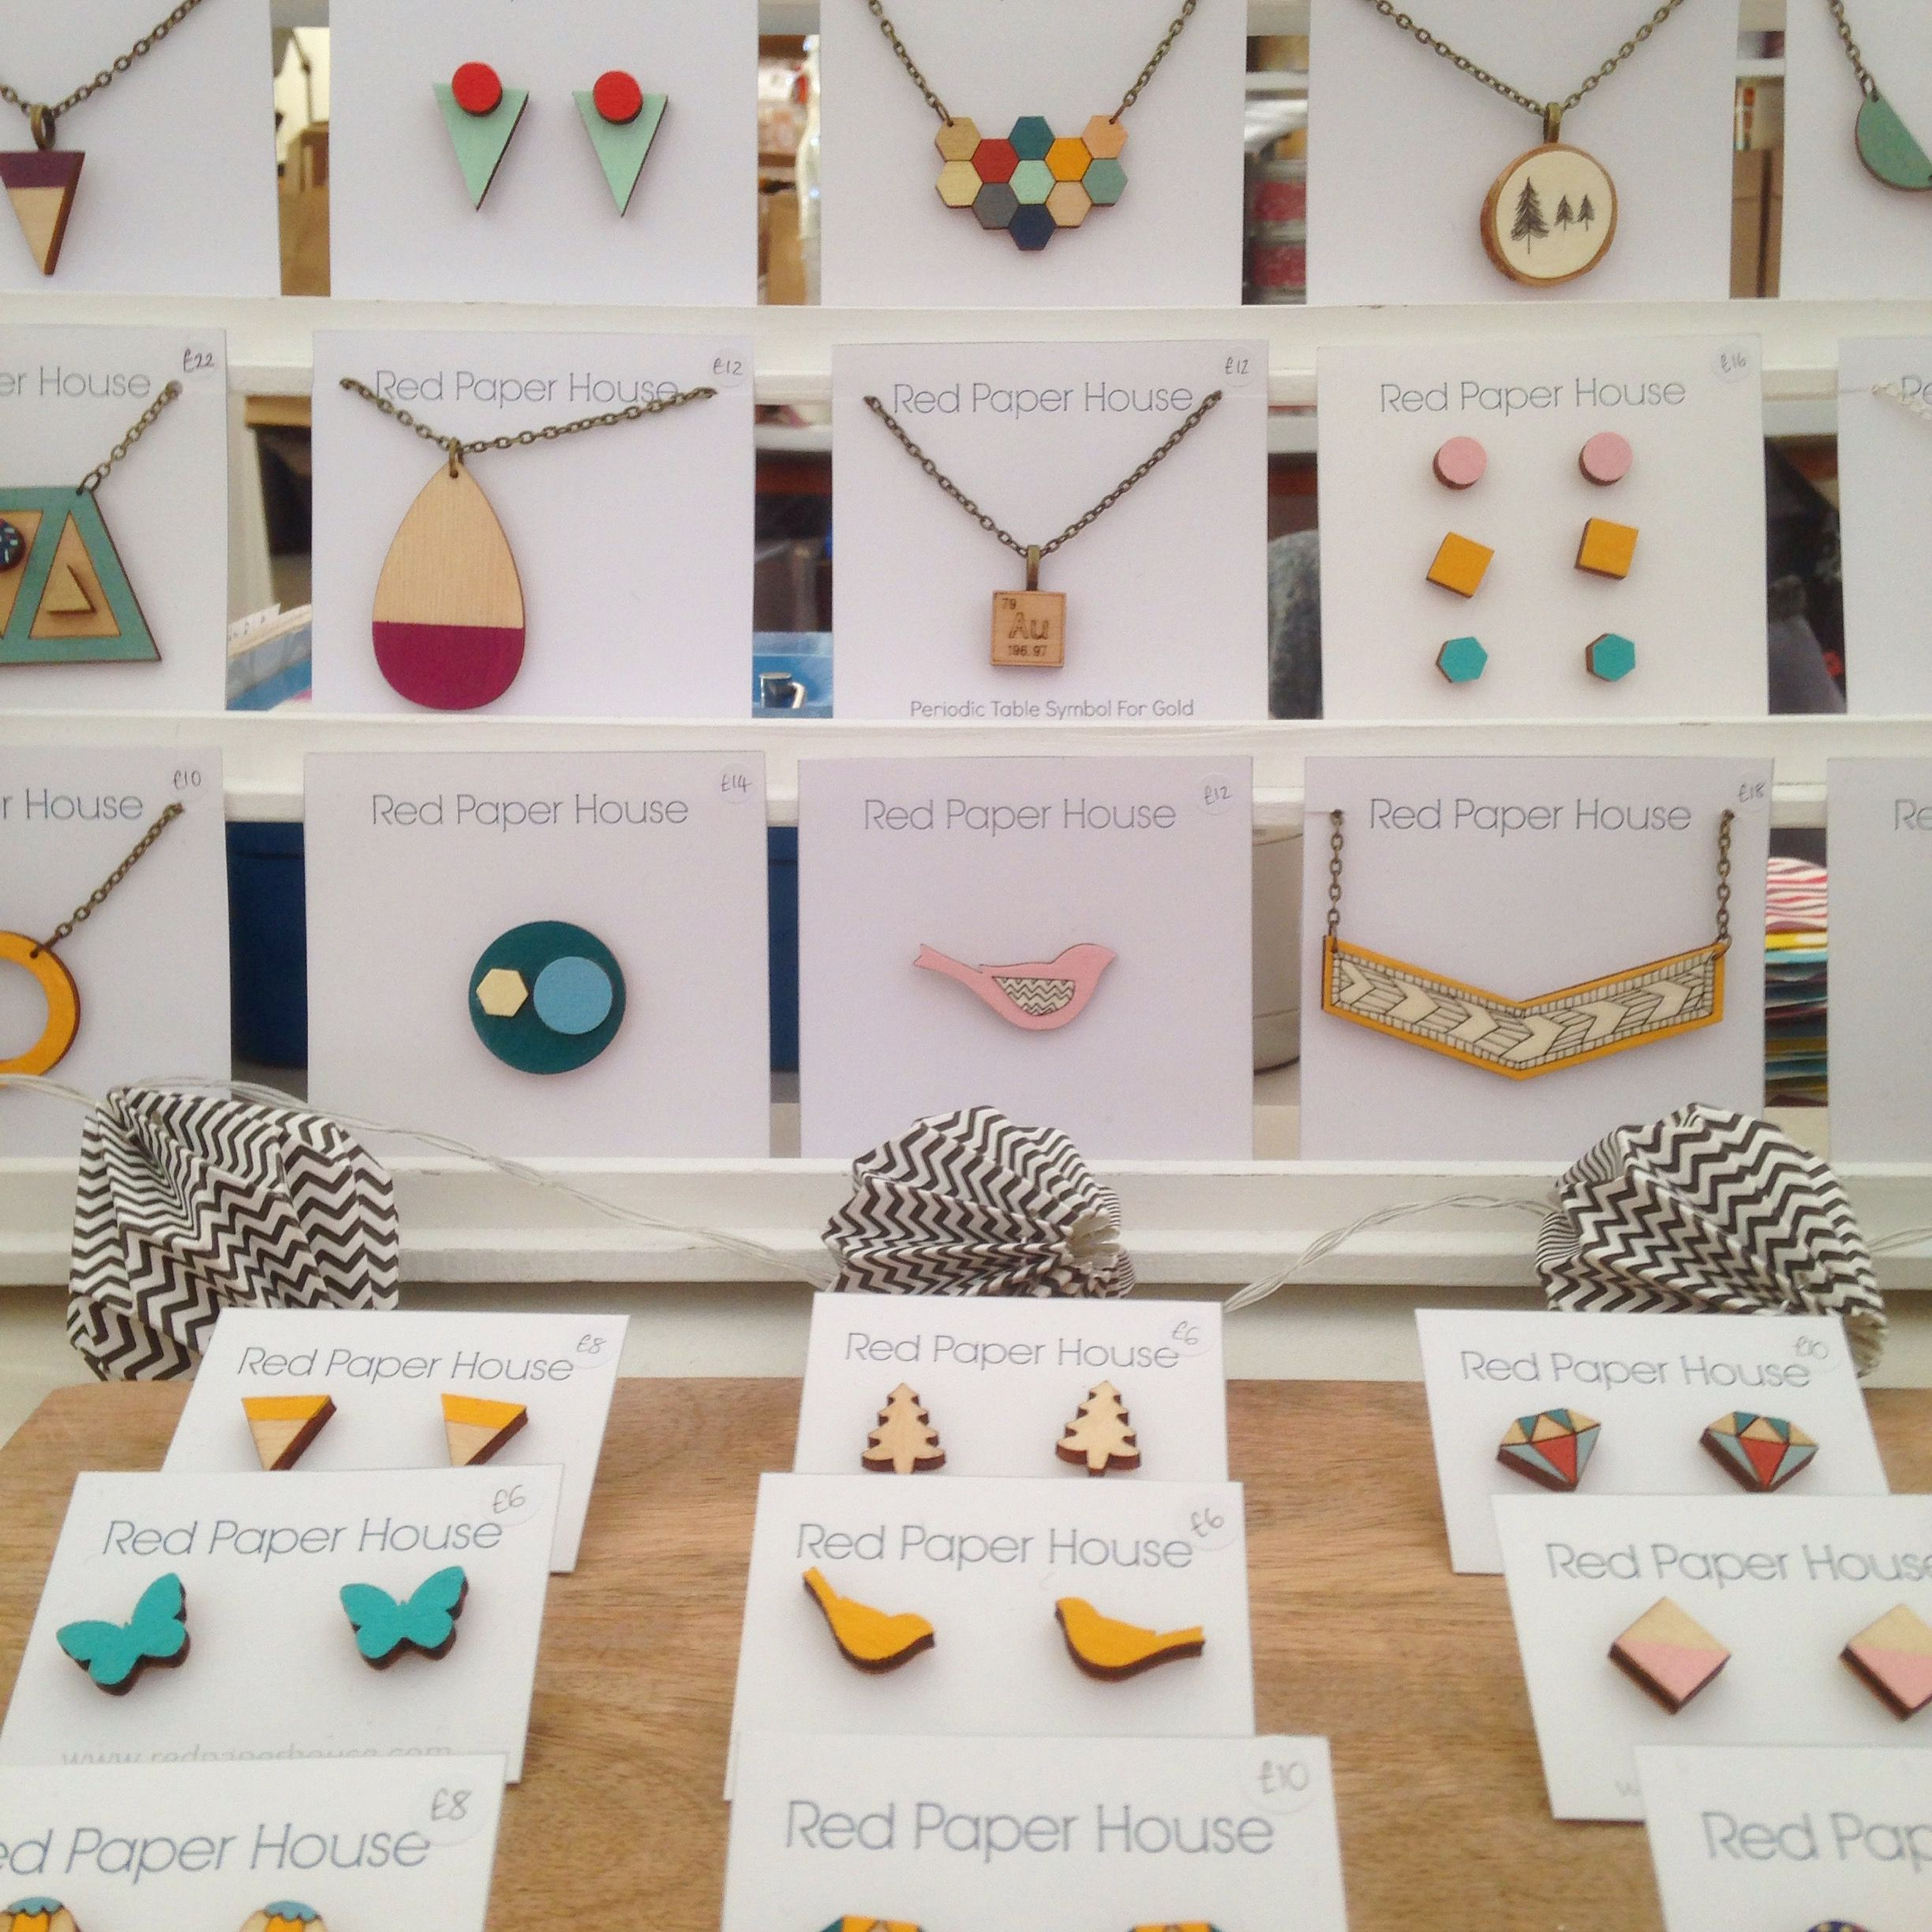 Pin by red paper house on red paper house craft fair displays craft fair displays shop displays paper houses craft fairs red paper christmas markets jewellery necklaces contemporary jeuxipadfo Image collections